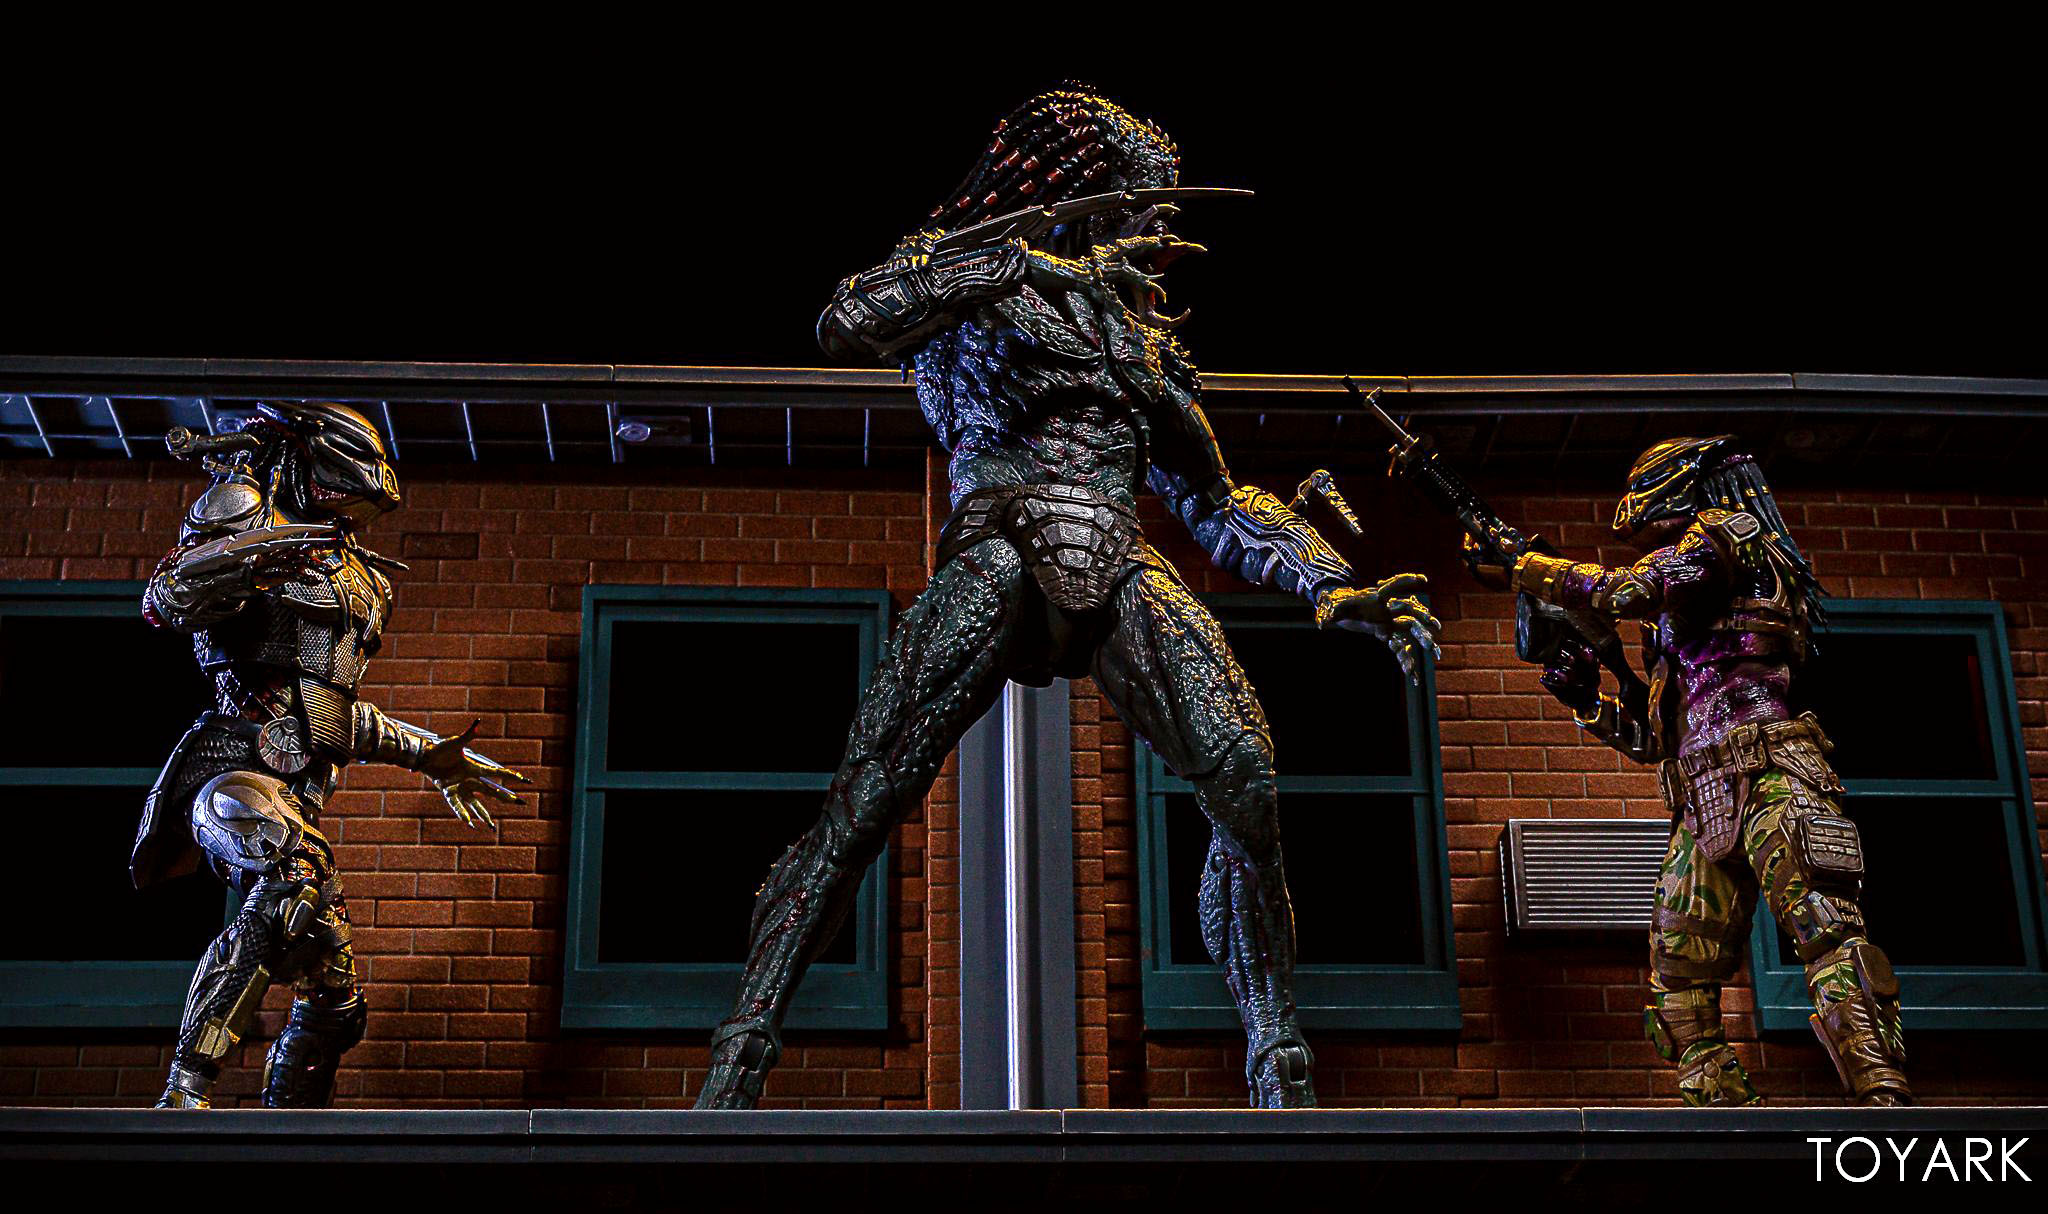 https://news.toyark.com/wp-content/uploads/sites/4/2019/05/Emissary-Predator-1-NECA-Figure-030.jpg